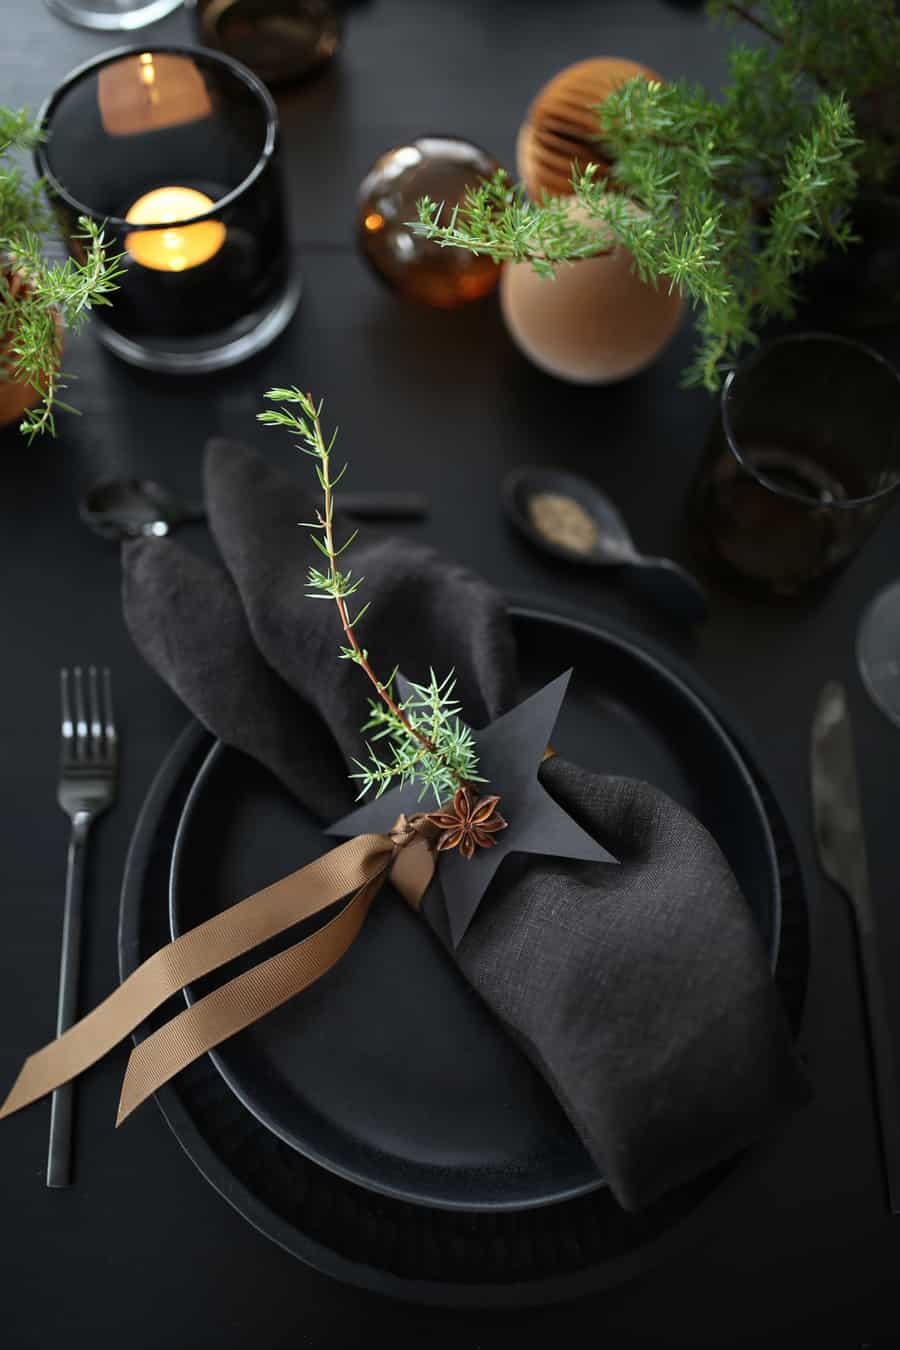 Dark and moody black table setting with black napkins and gold accents.